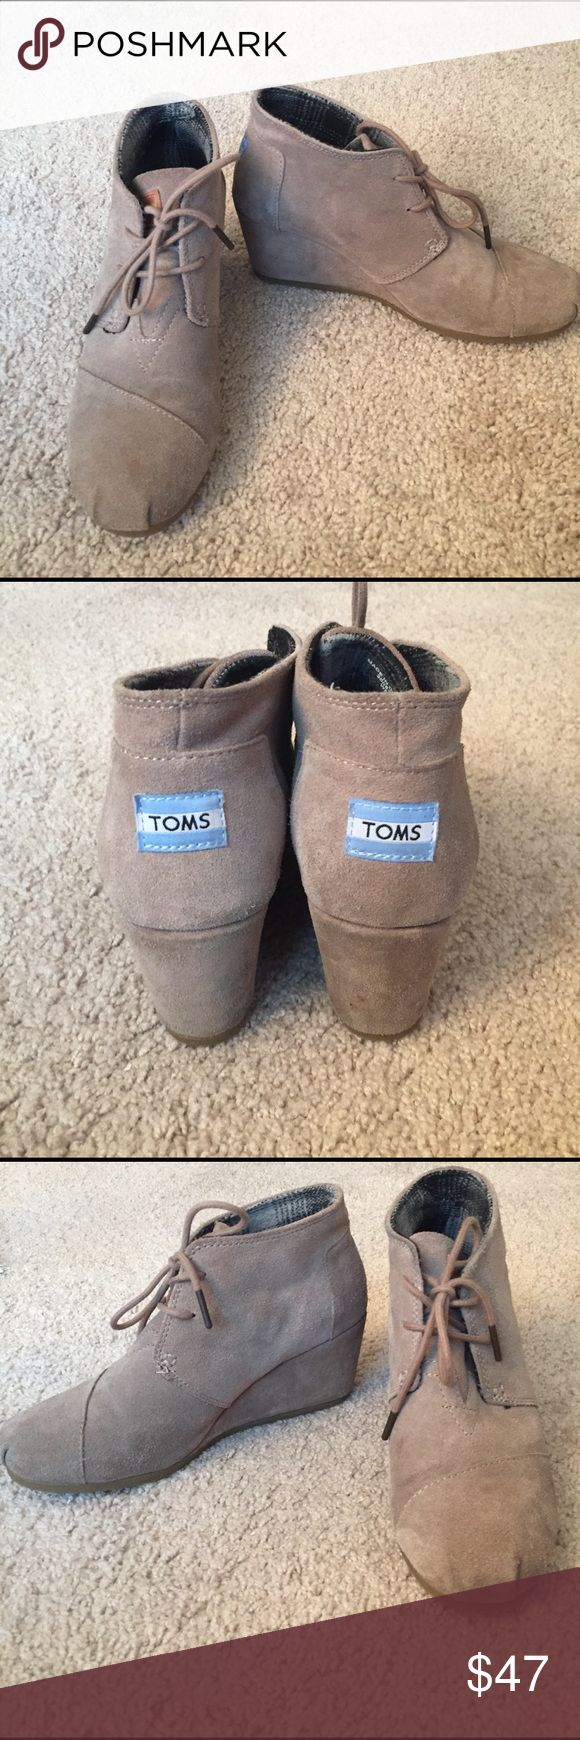 TOMS Taupe Wedge Bootie Size 8 Taupe wedge bootie with a 2.5 inch heel. Size 8. Fits true to size. TOMS Shoes Ankle Boots & Booties